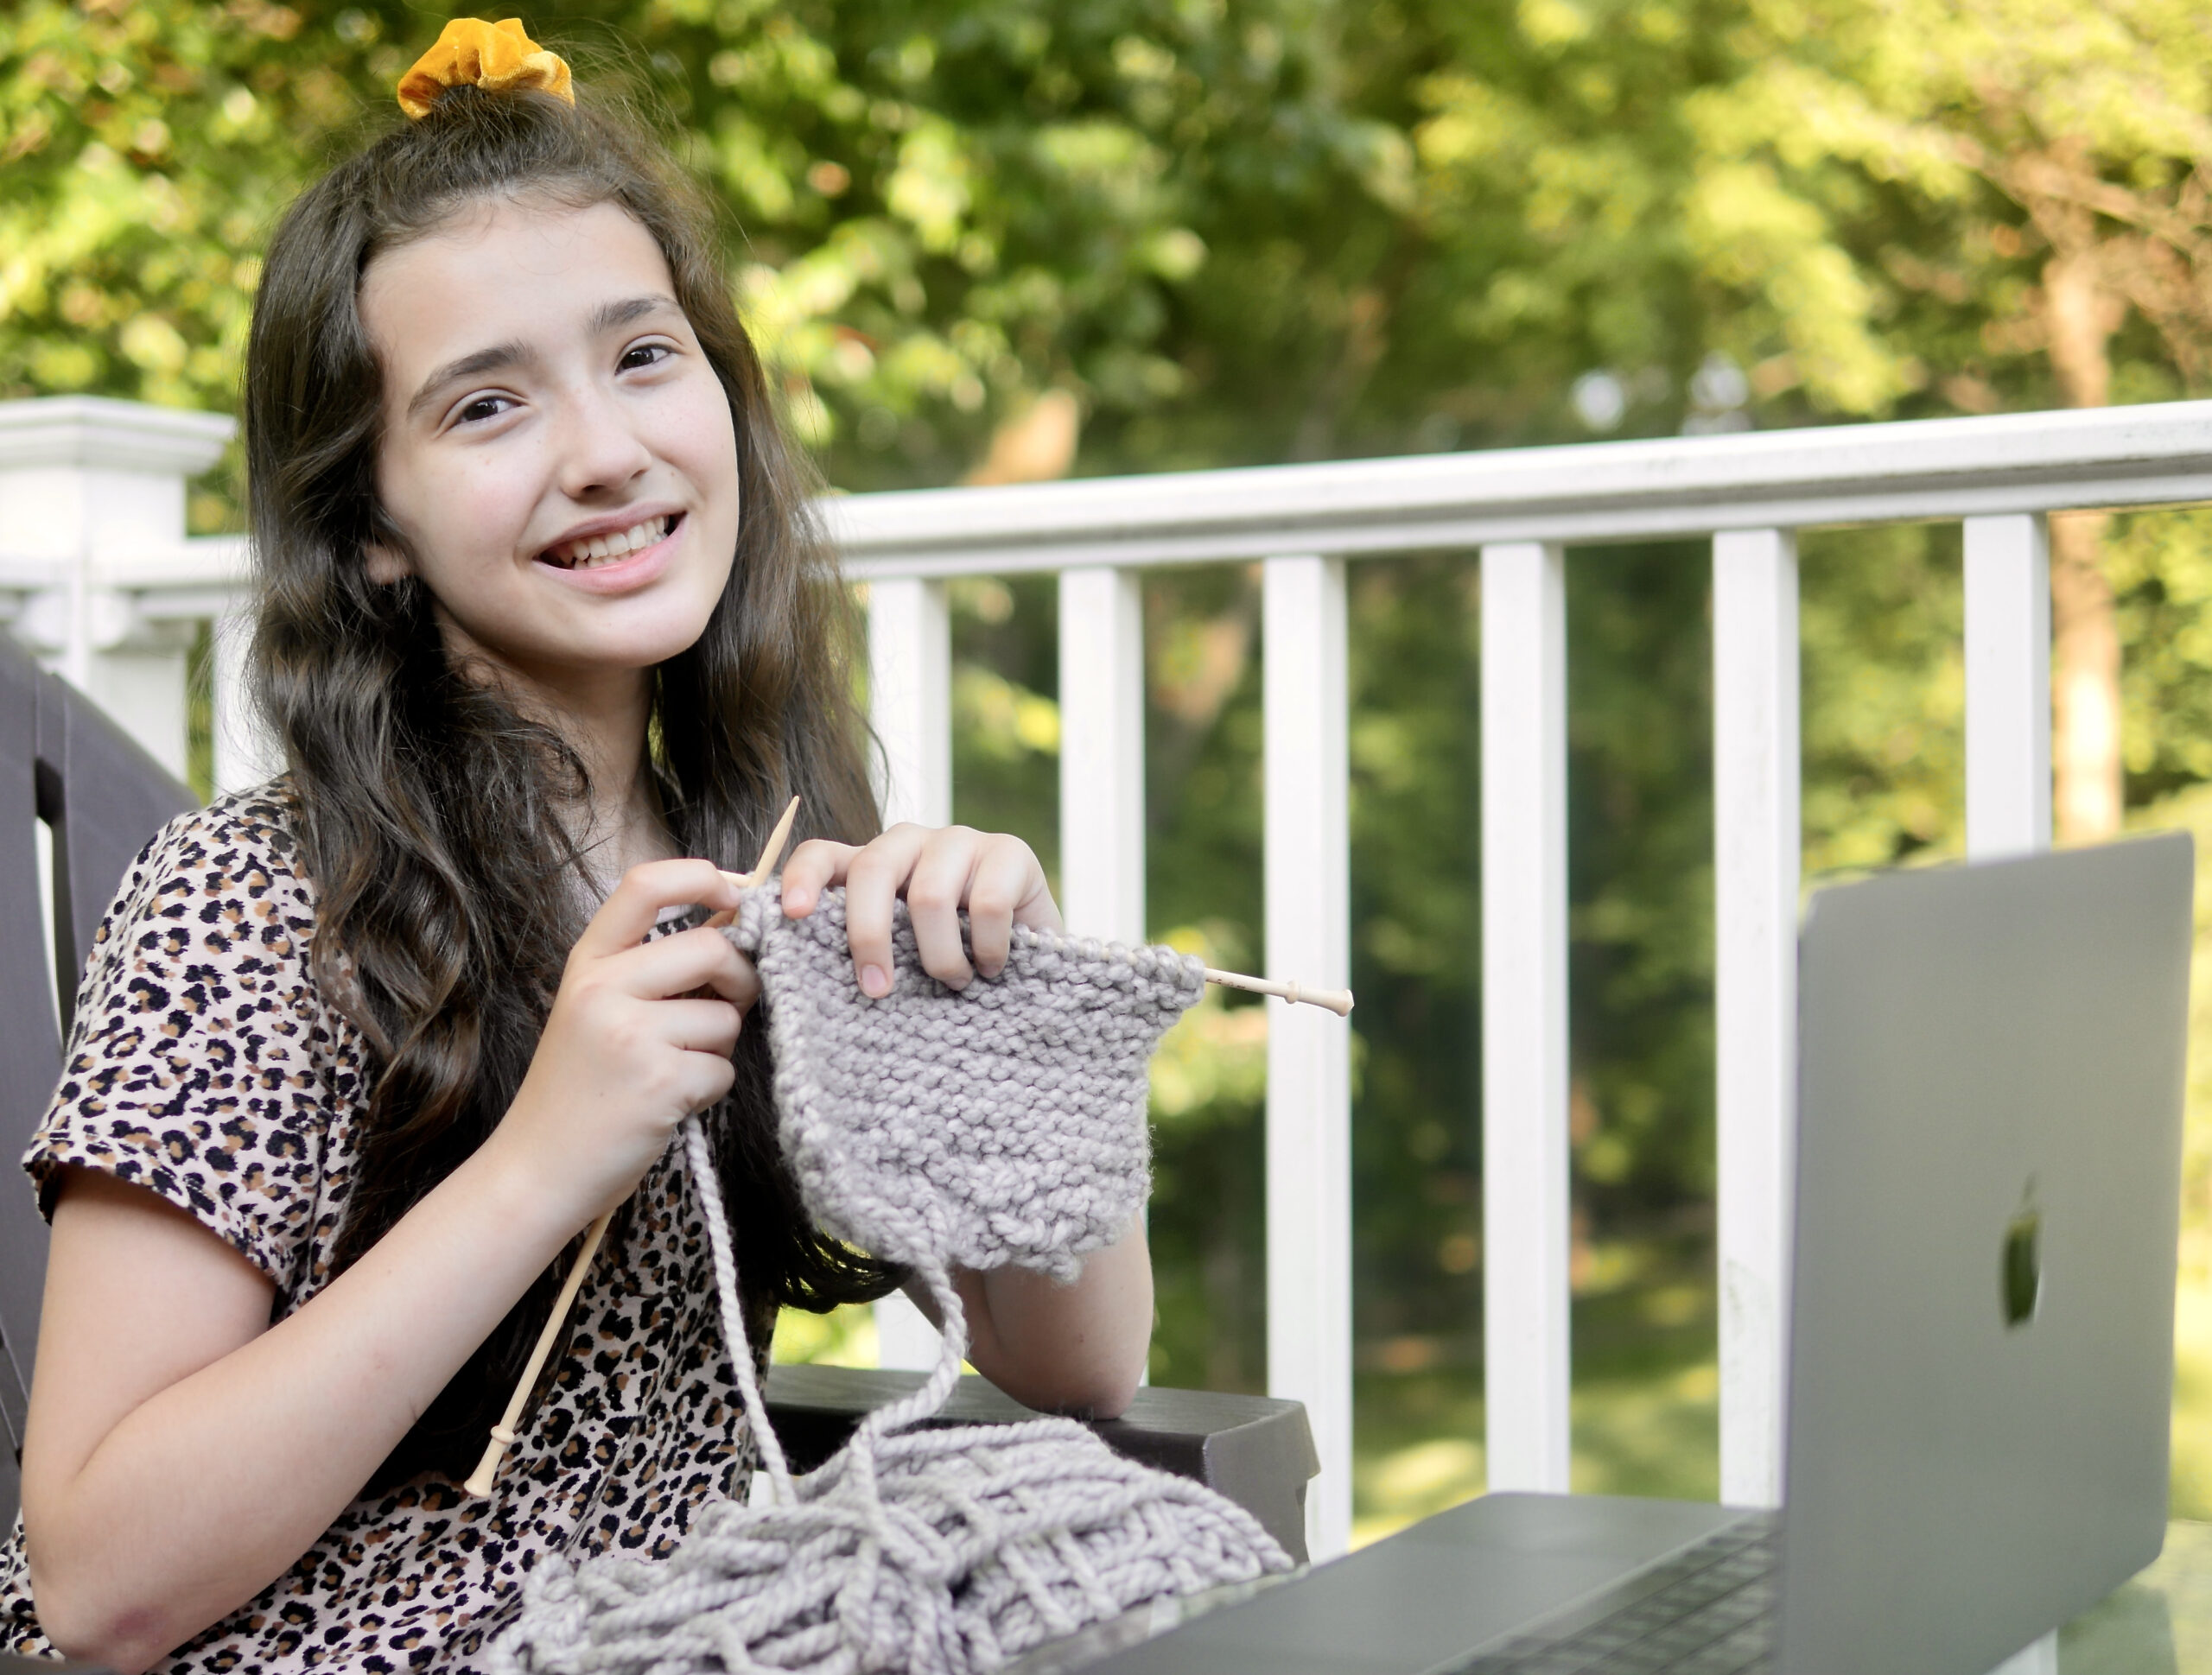 Virtual Knitting Classes on Outschool